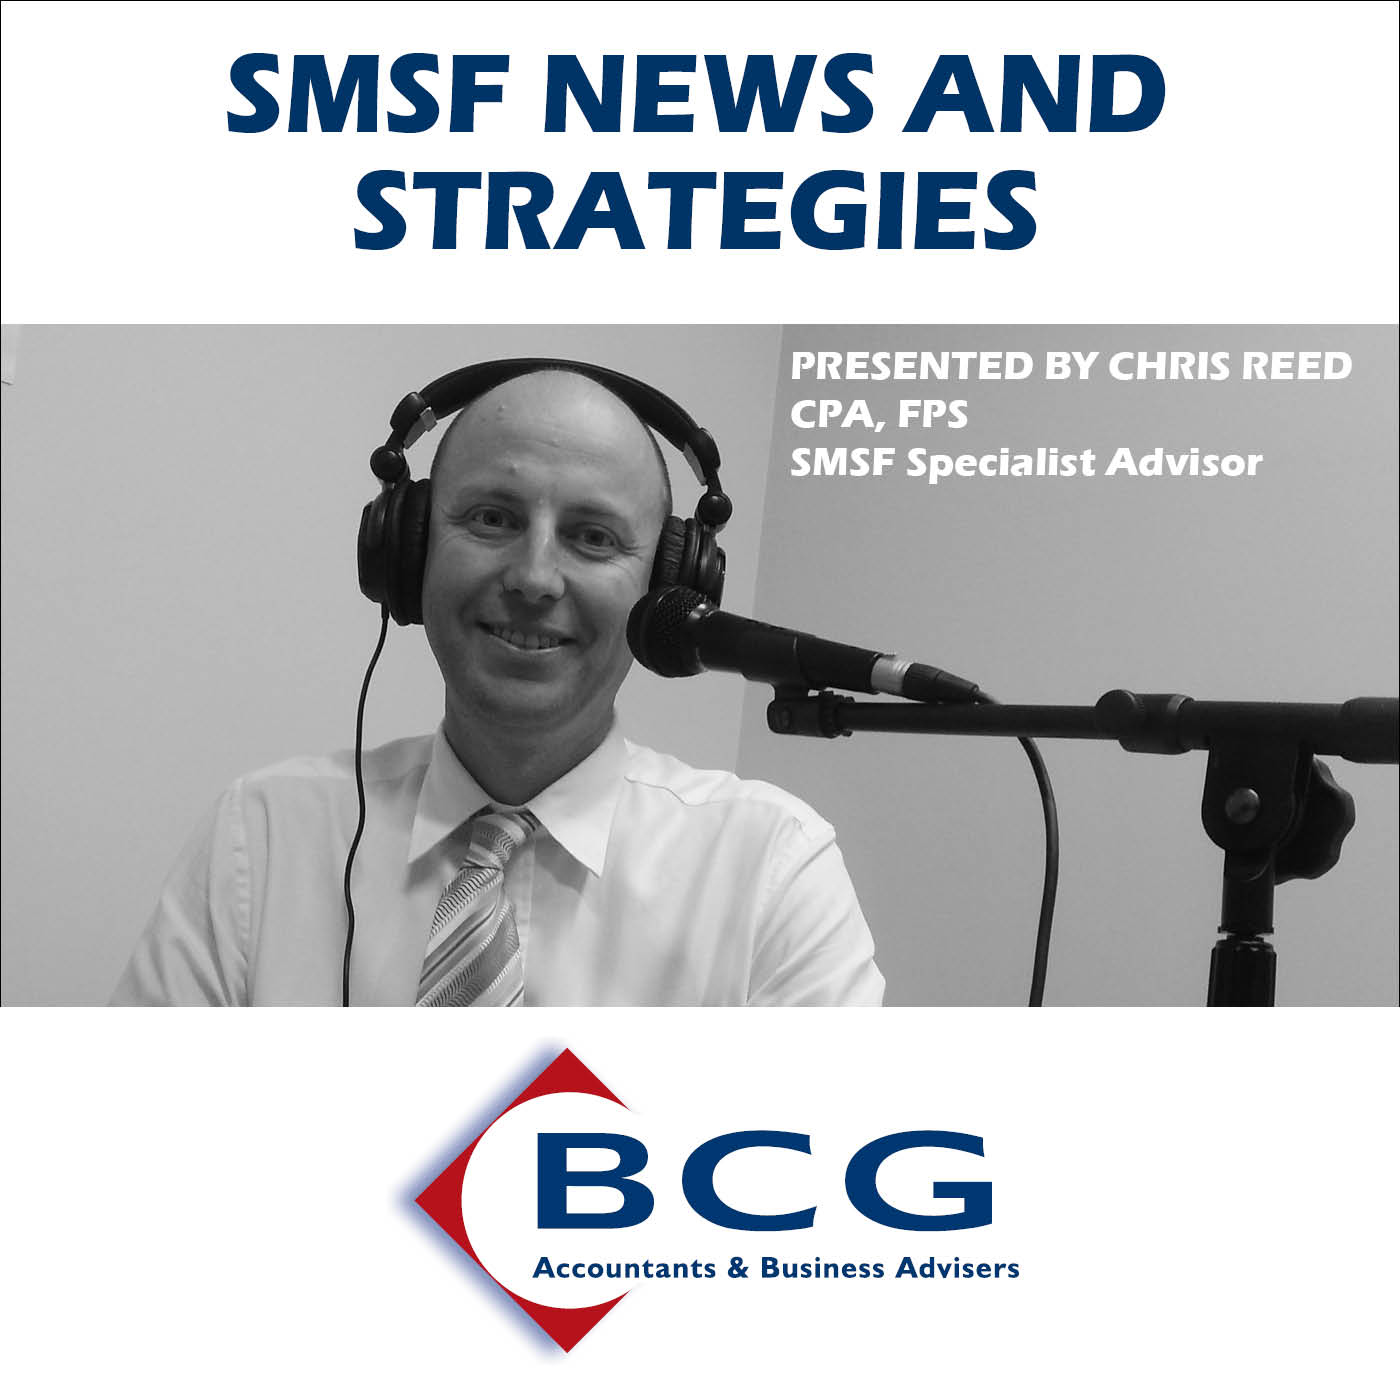 SMSF NS052 : The Latest SMSF News as well as the Benefits and Strategies for Members of a Couple to Equalise their Account Balances Under the New Super Rules